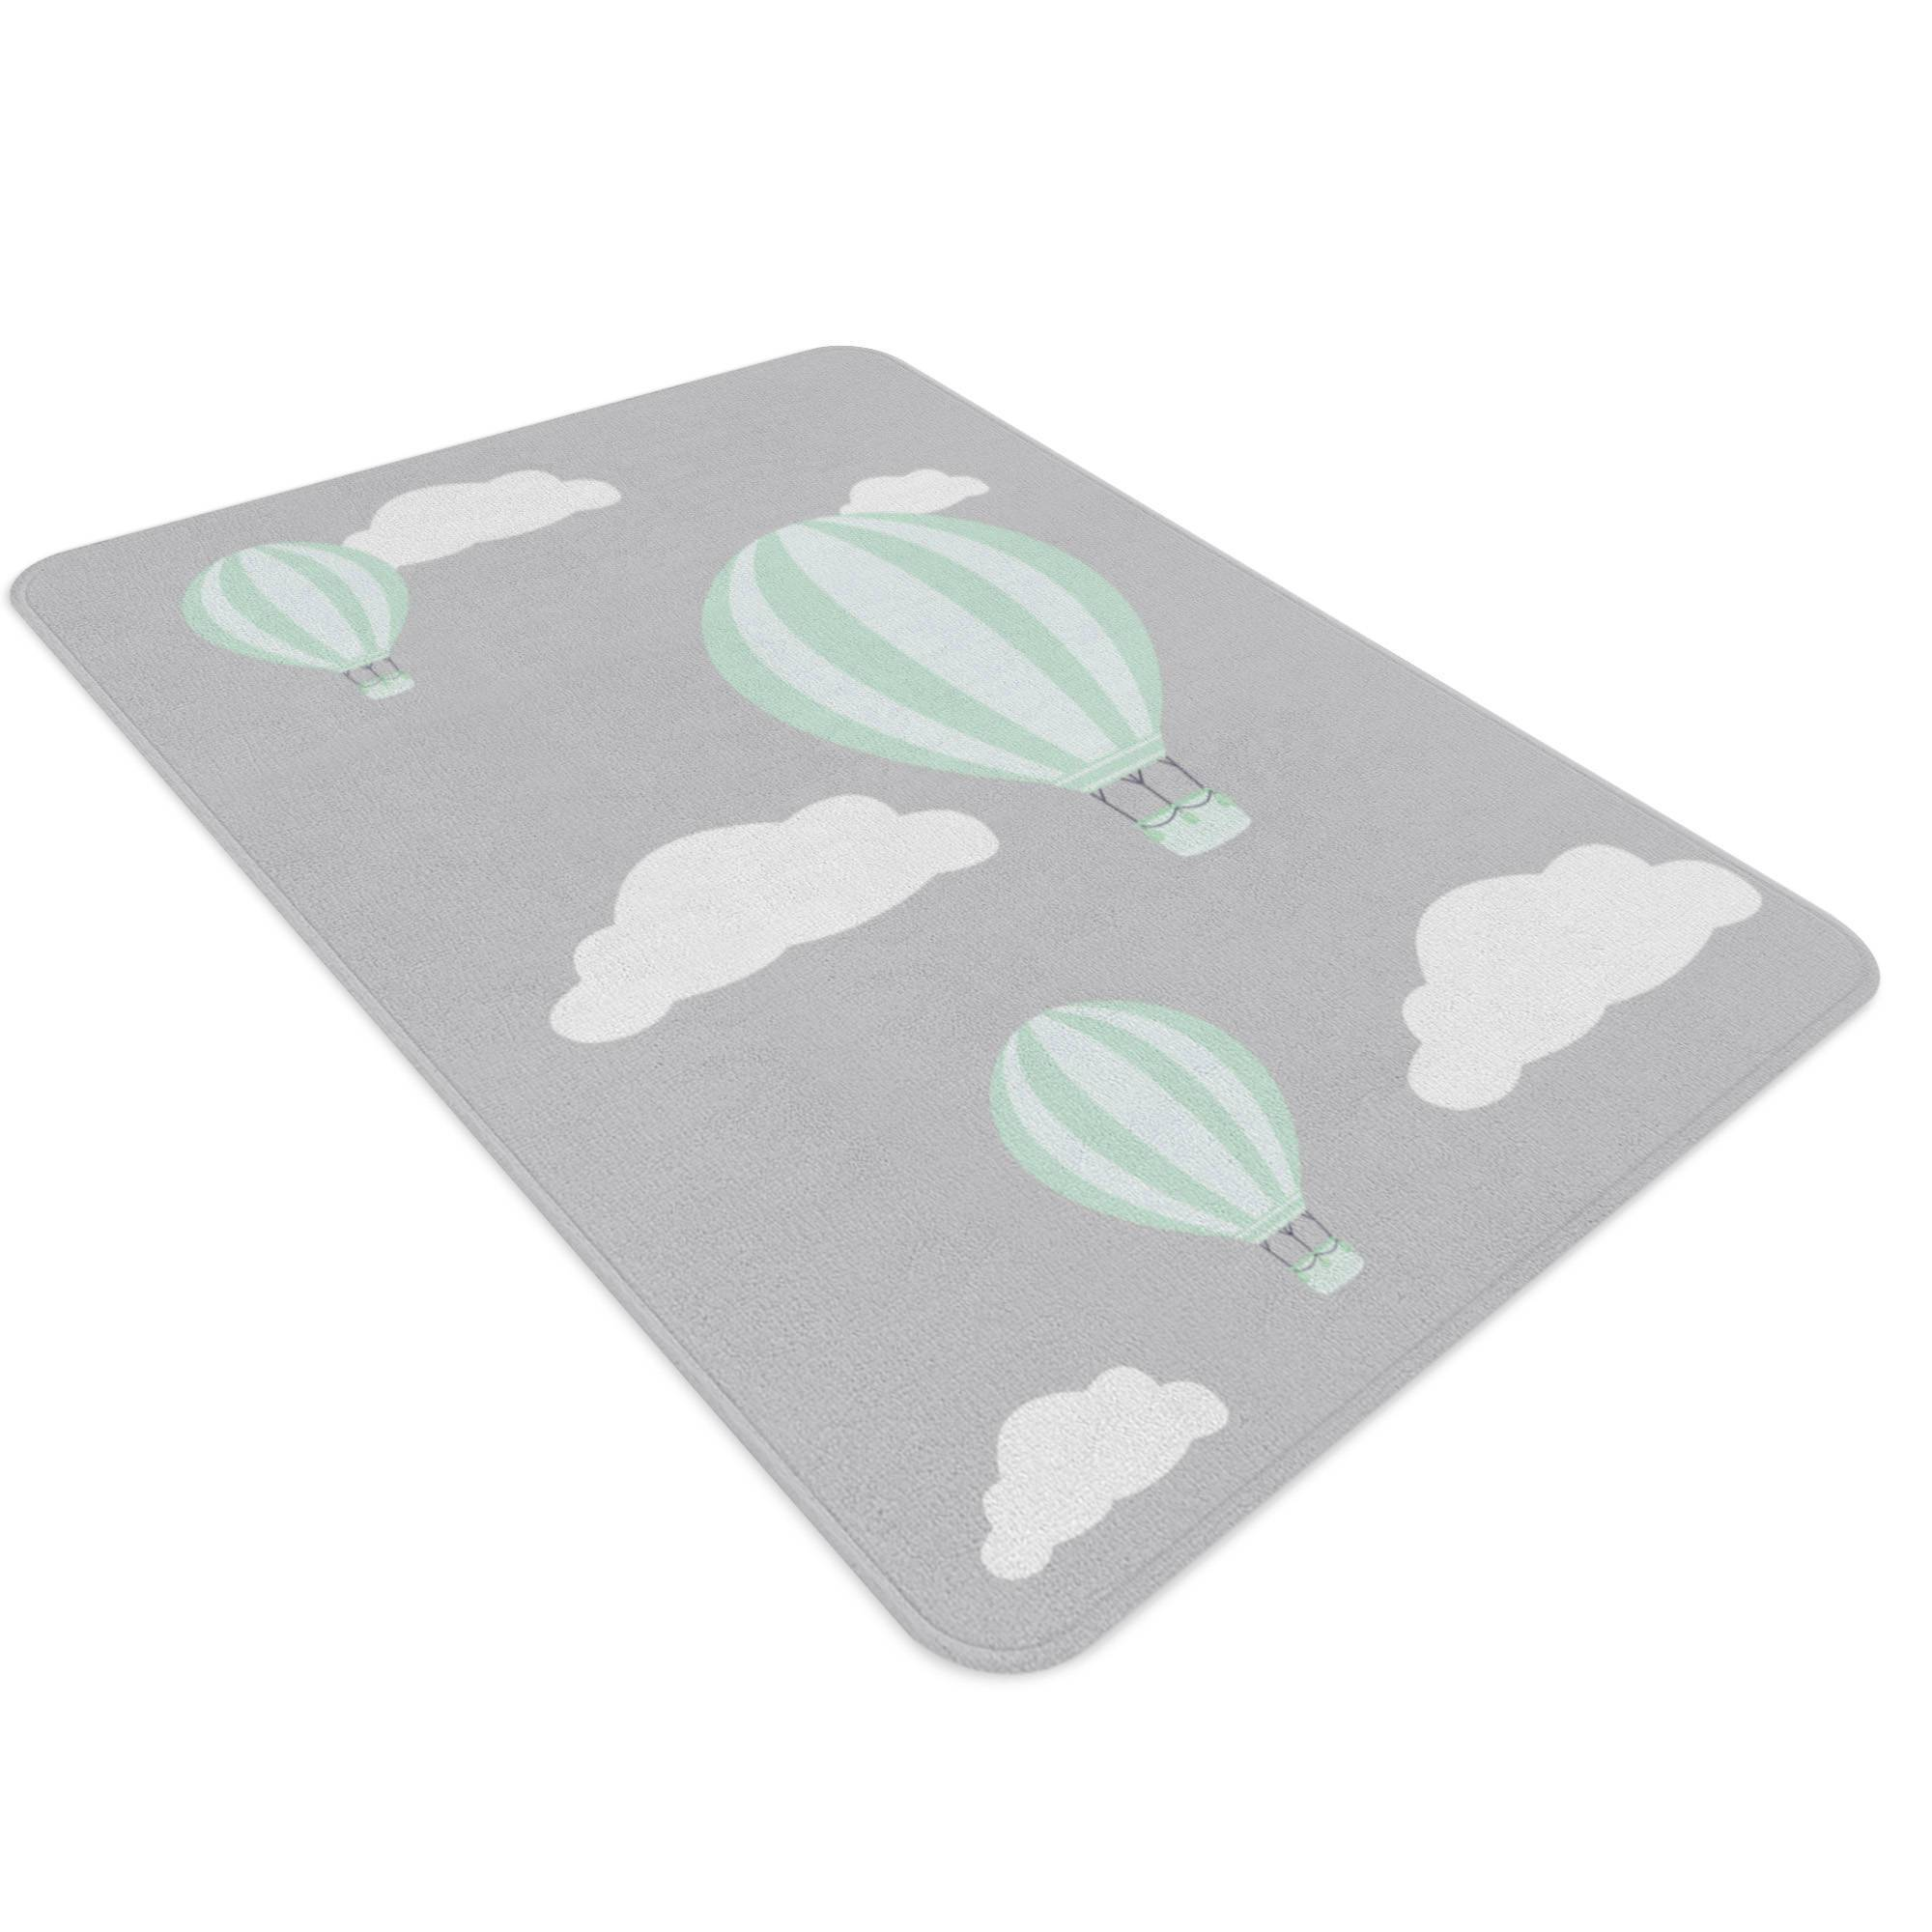 Hot Air Balloon Nursery, Cloud Rug, Grey Nursery Decor, Kids Rug